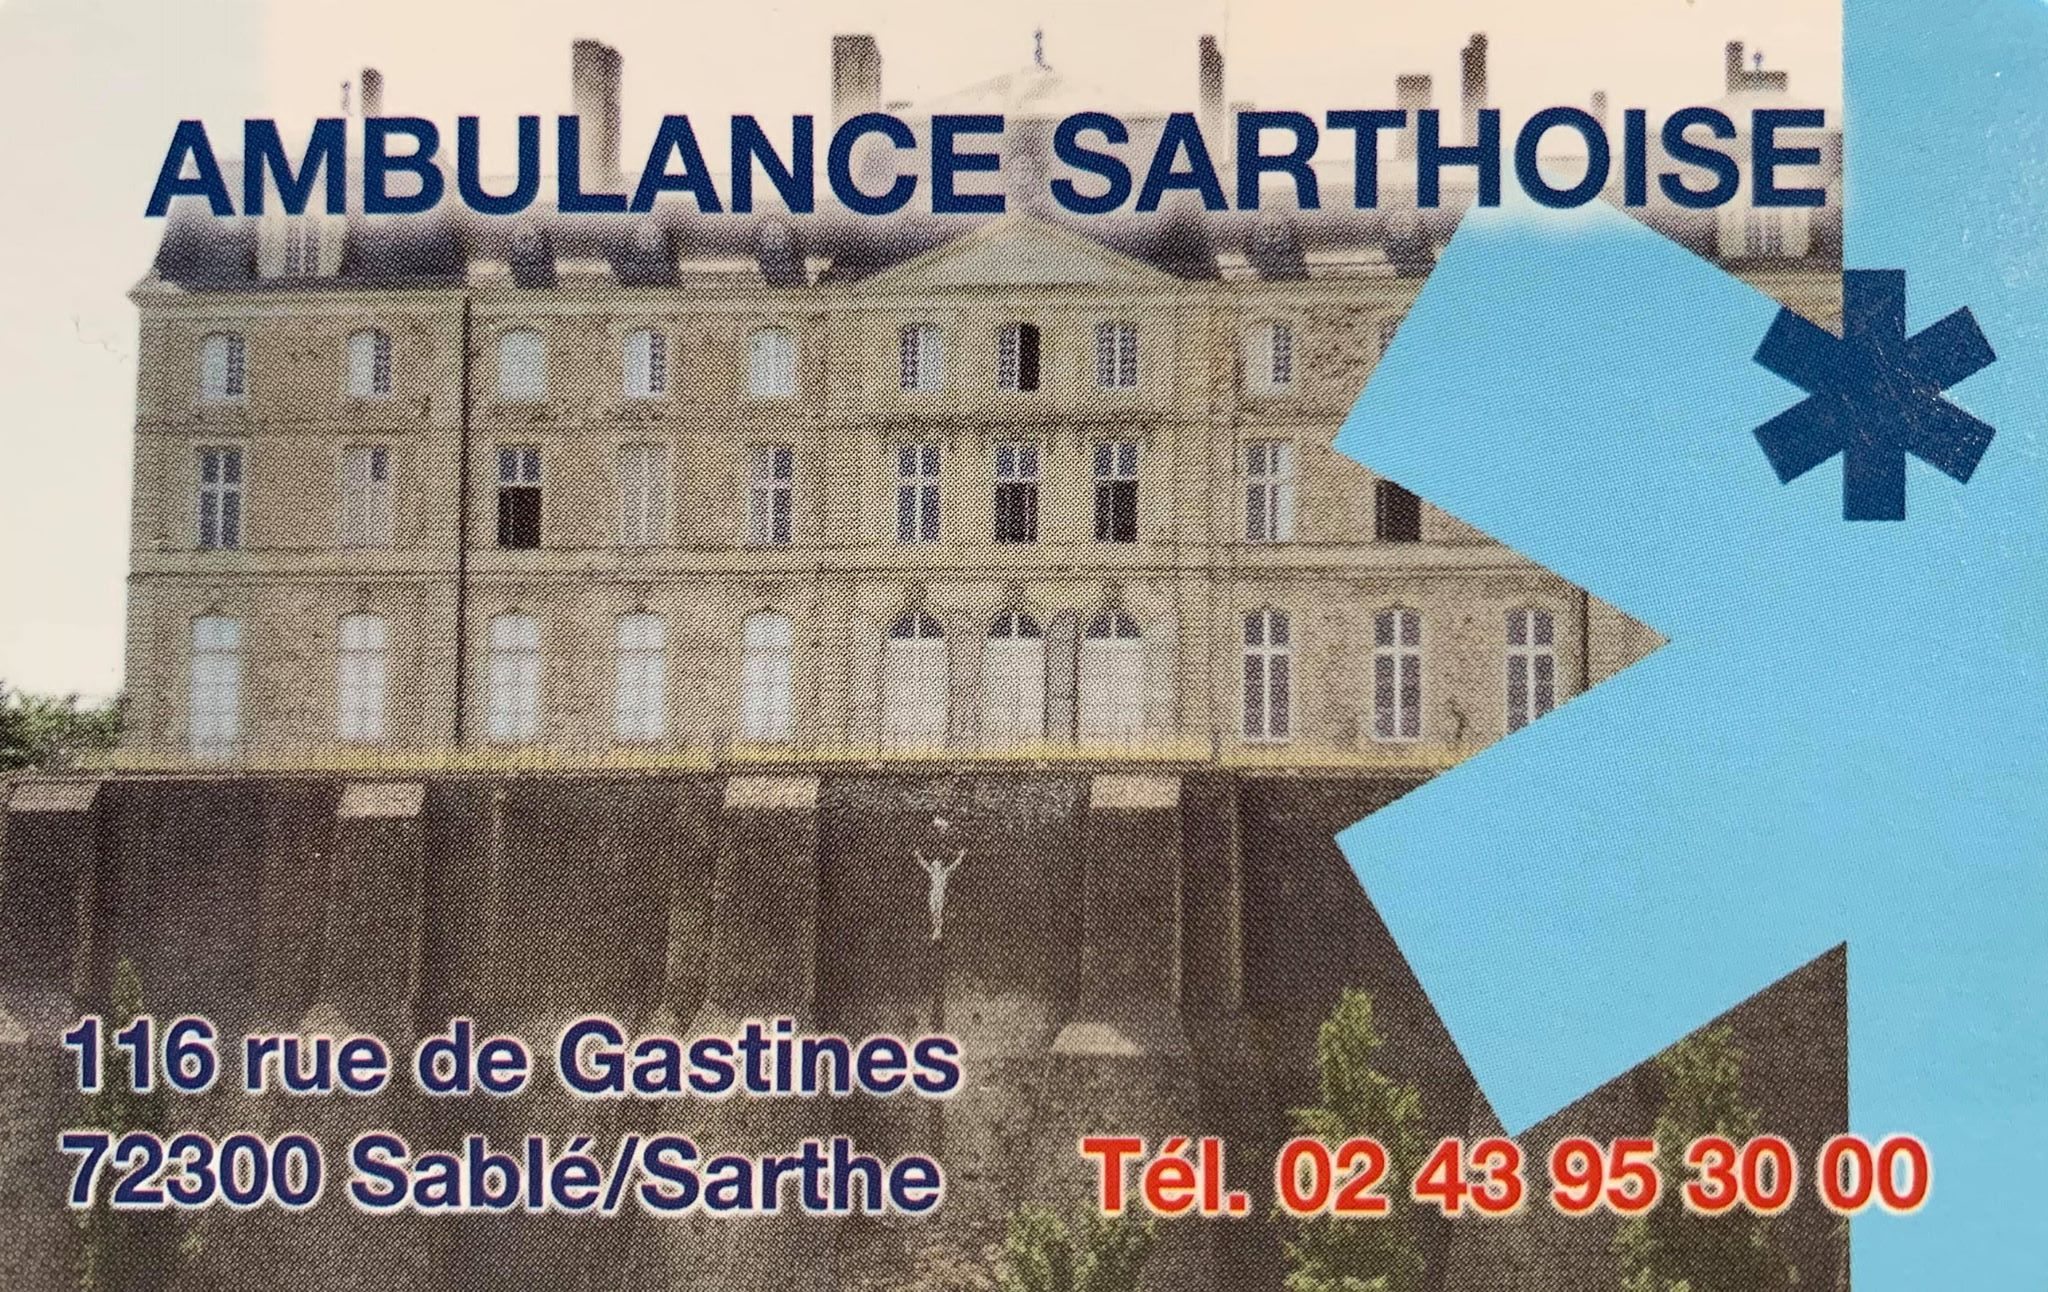 Ambulance Sarthoise